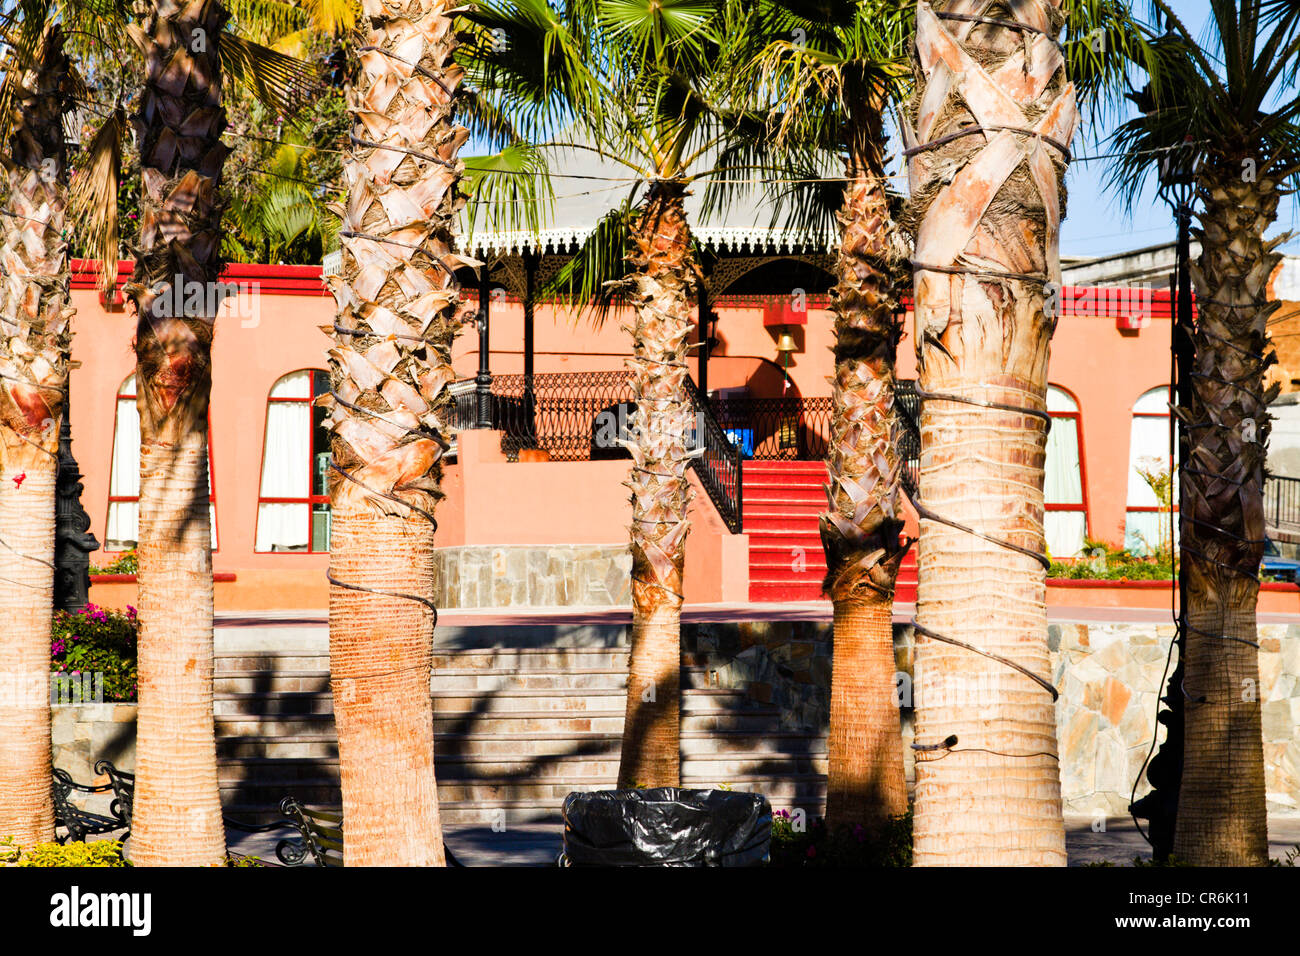 View of bandstand and municipal  building through palm trees in 'Todos Santos' Baja Mexico - Stock Image